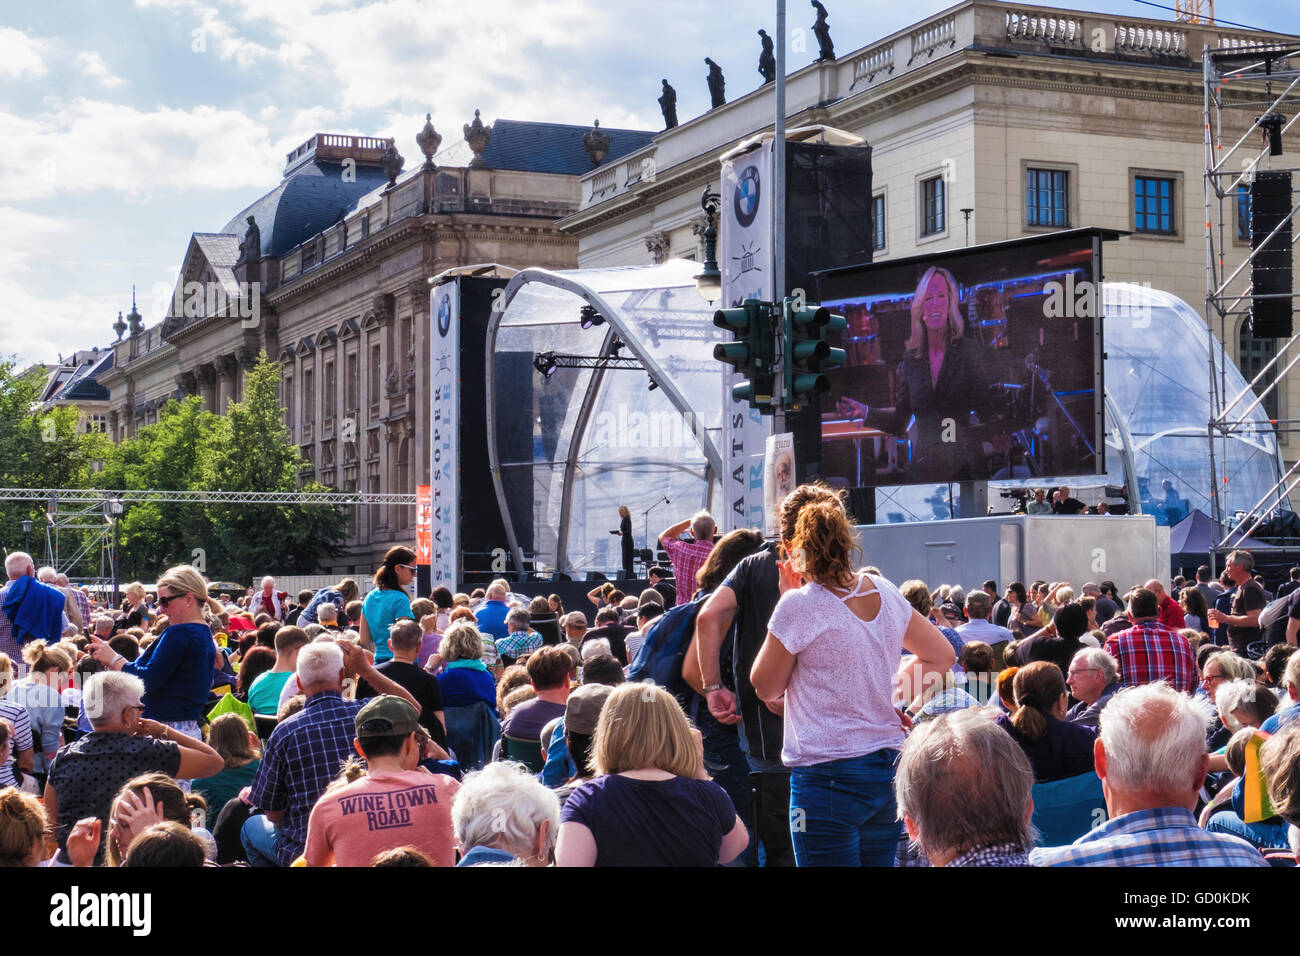 Berlin. Germany, 9th July 2016. Crowds gather in the Unter den Linden for the free annual Open Air Concert conducted - Stock Image